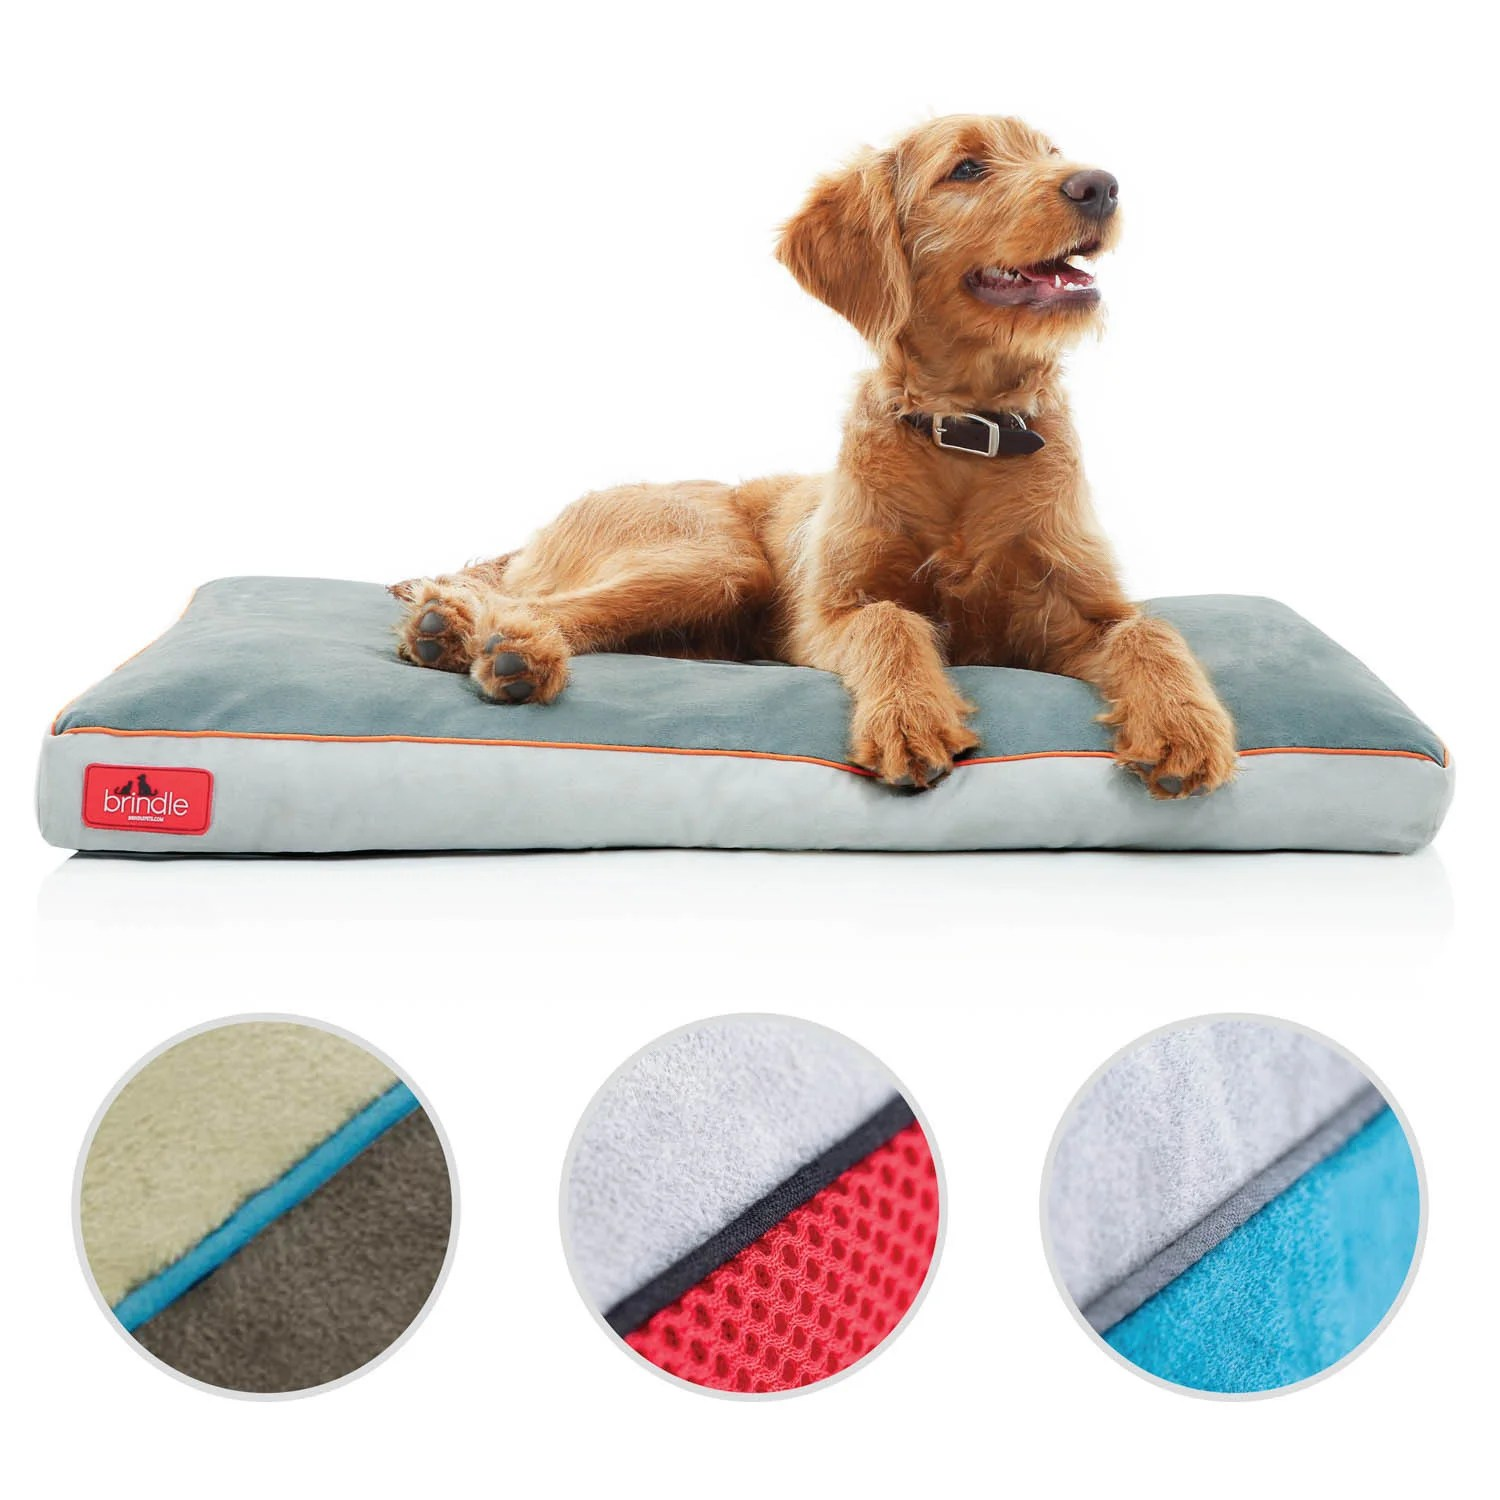 Dog Beds Pet Brindle Memory Foam Dog Bed With Removable Washable Cover